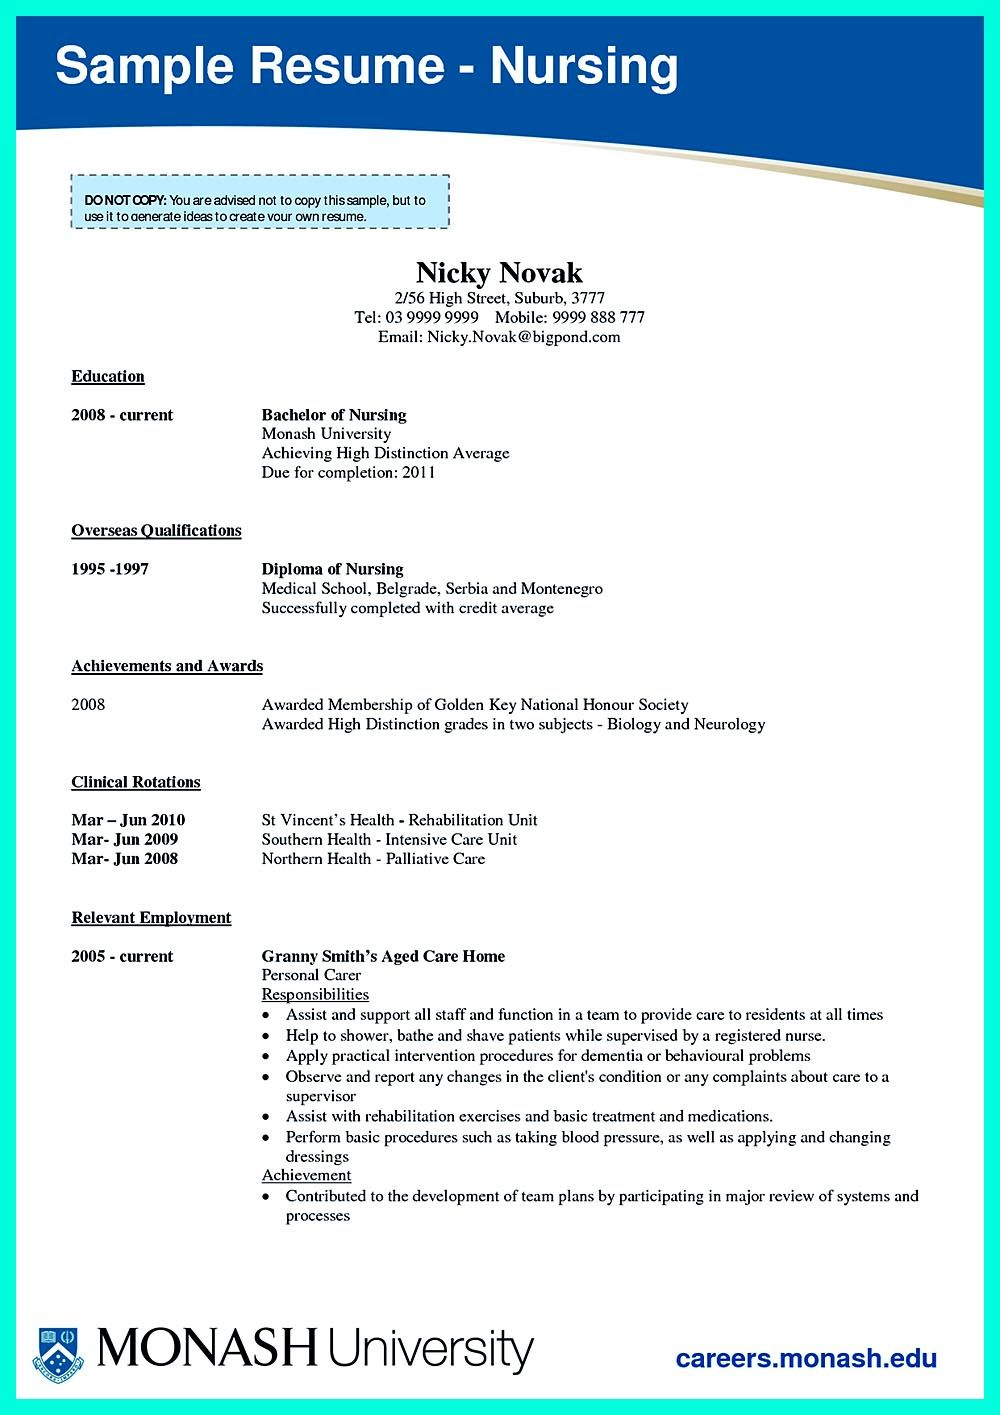 Critical care nurse resume objective | resume template | Pinterest